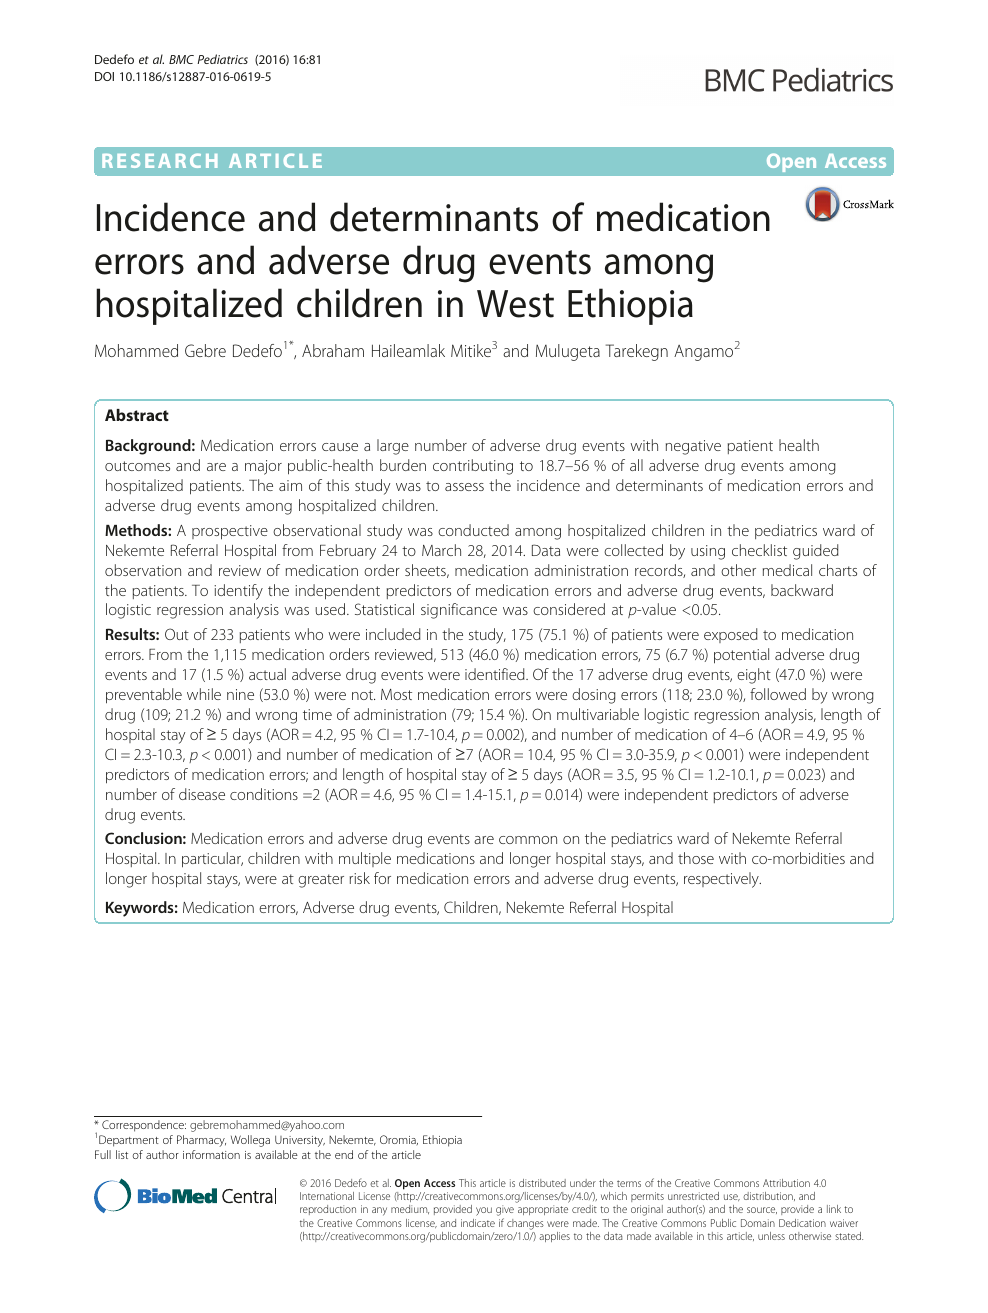 Incidence and determinants of medication errors and adverse